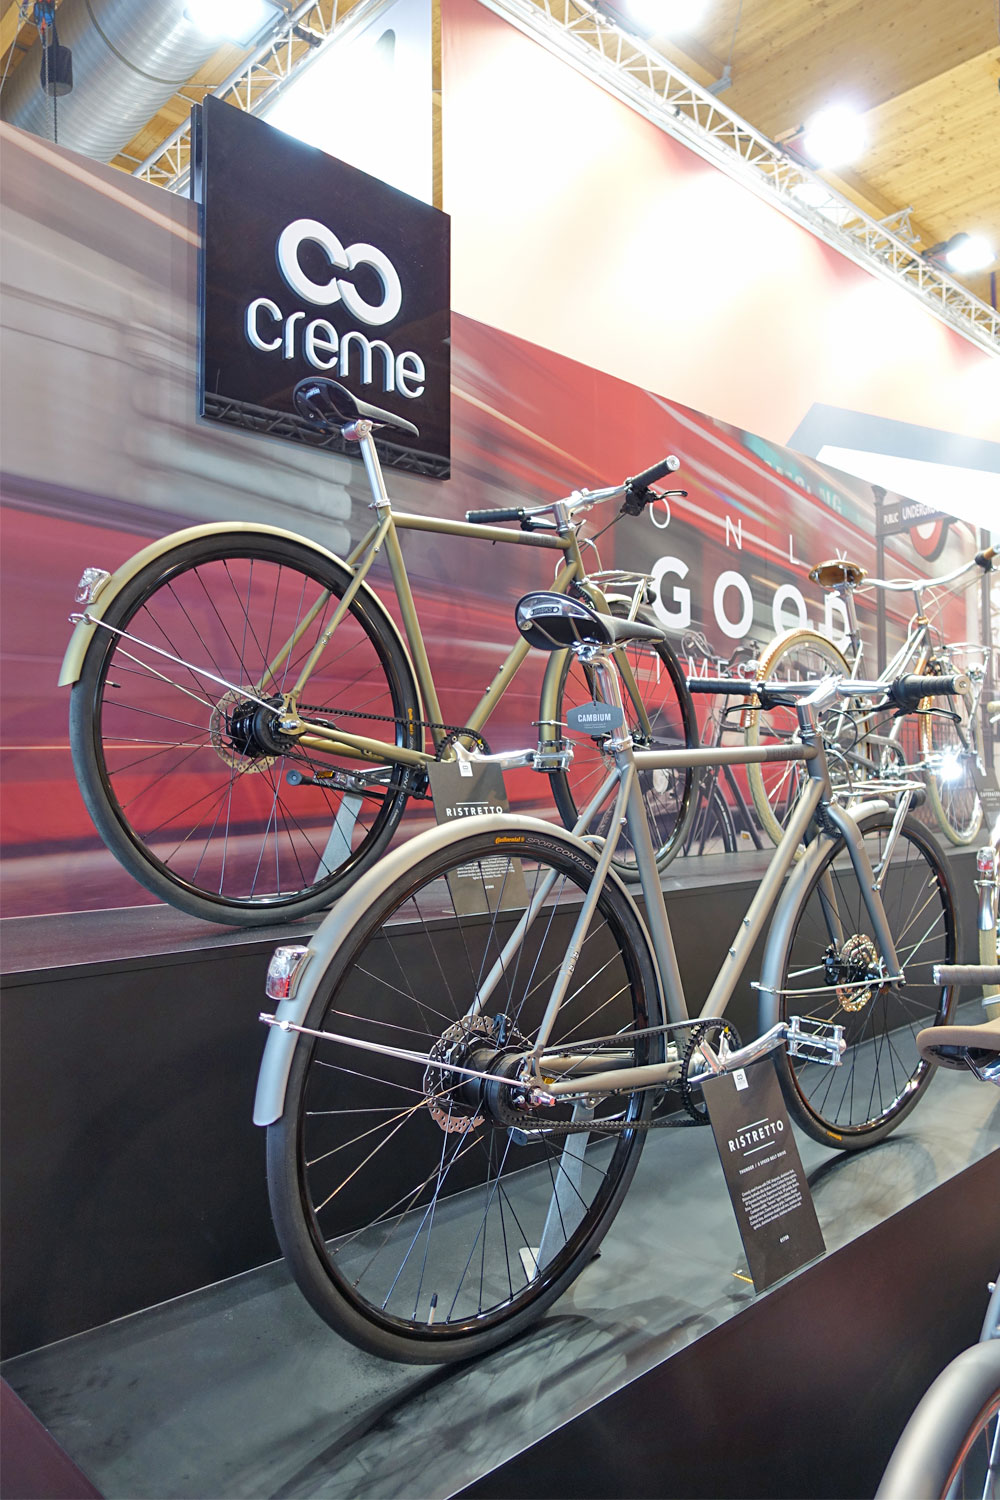 Eurobike-2017-News-Creme-Cycles-Ristretto-Urban-Bikes-Gates-Carbon-Drive